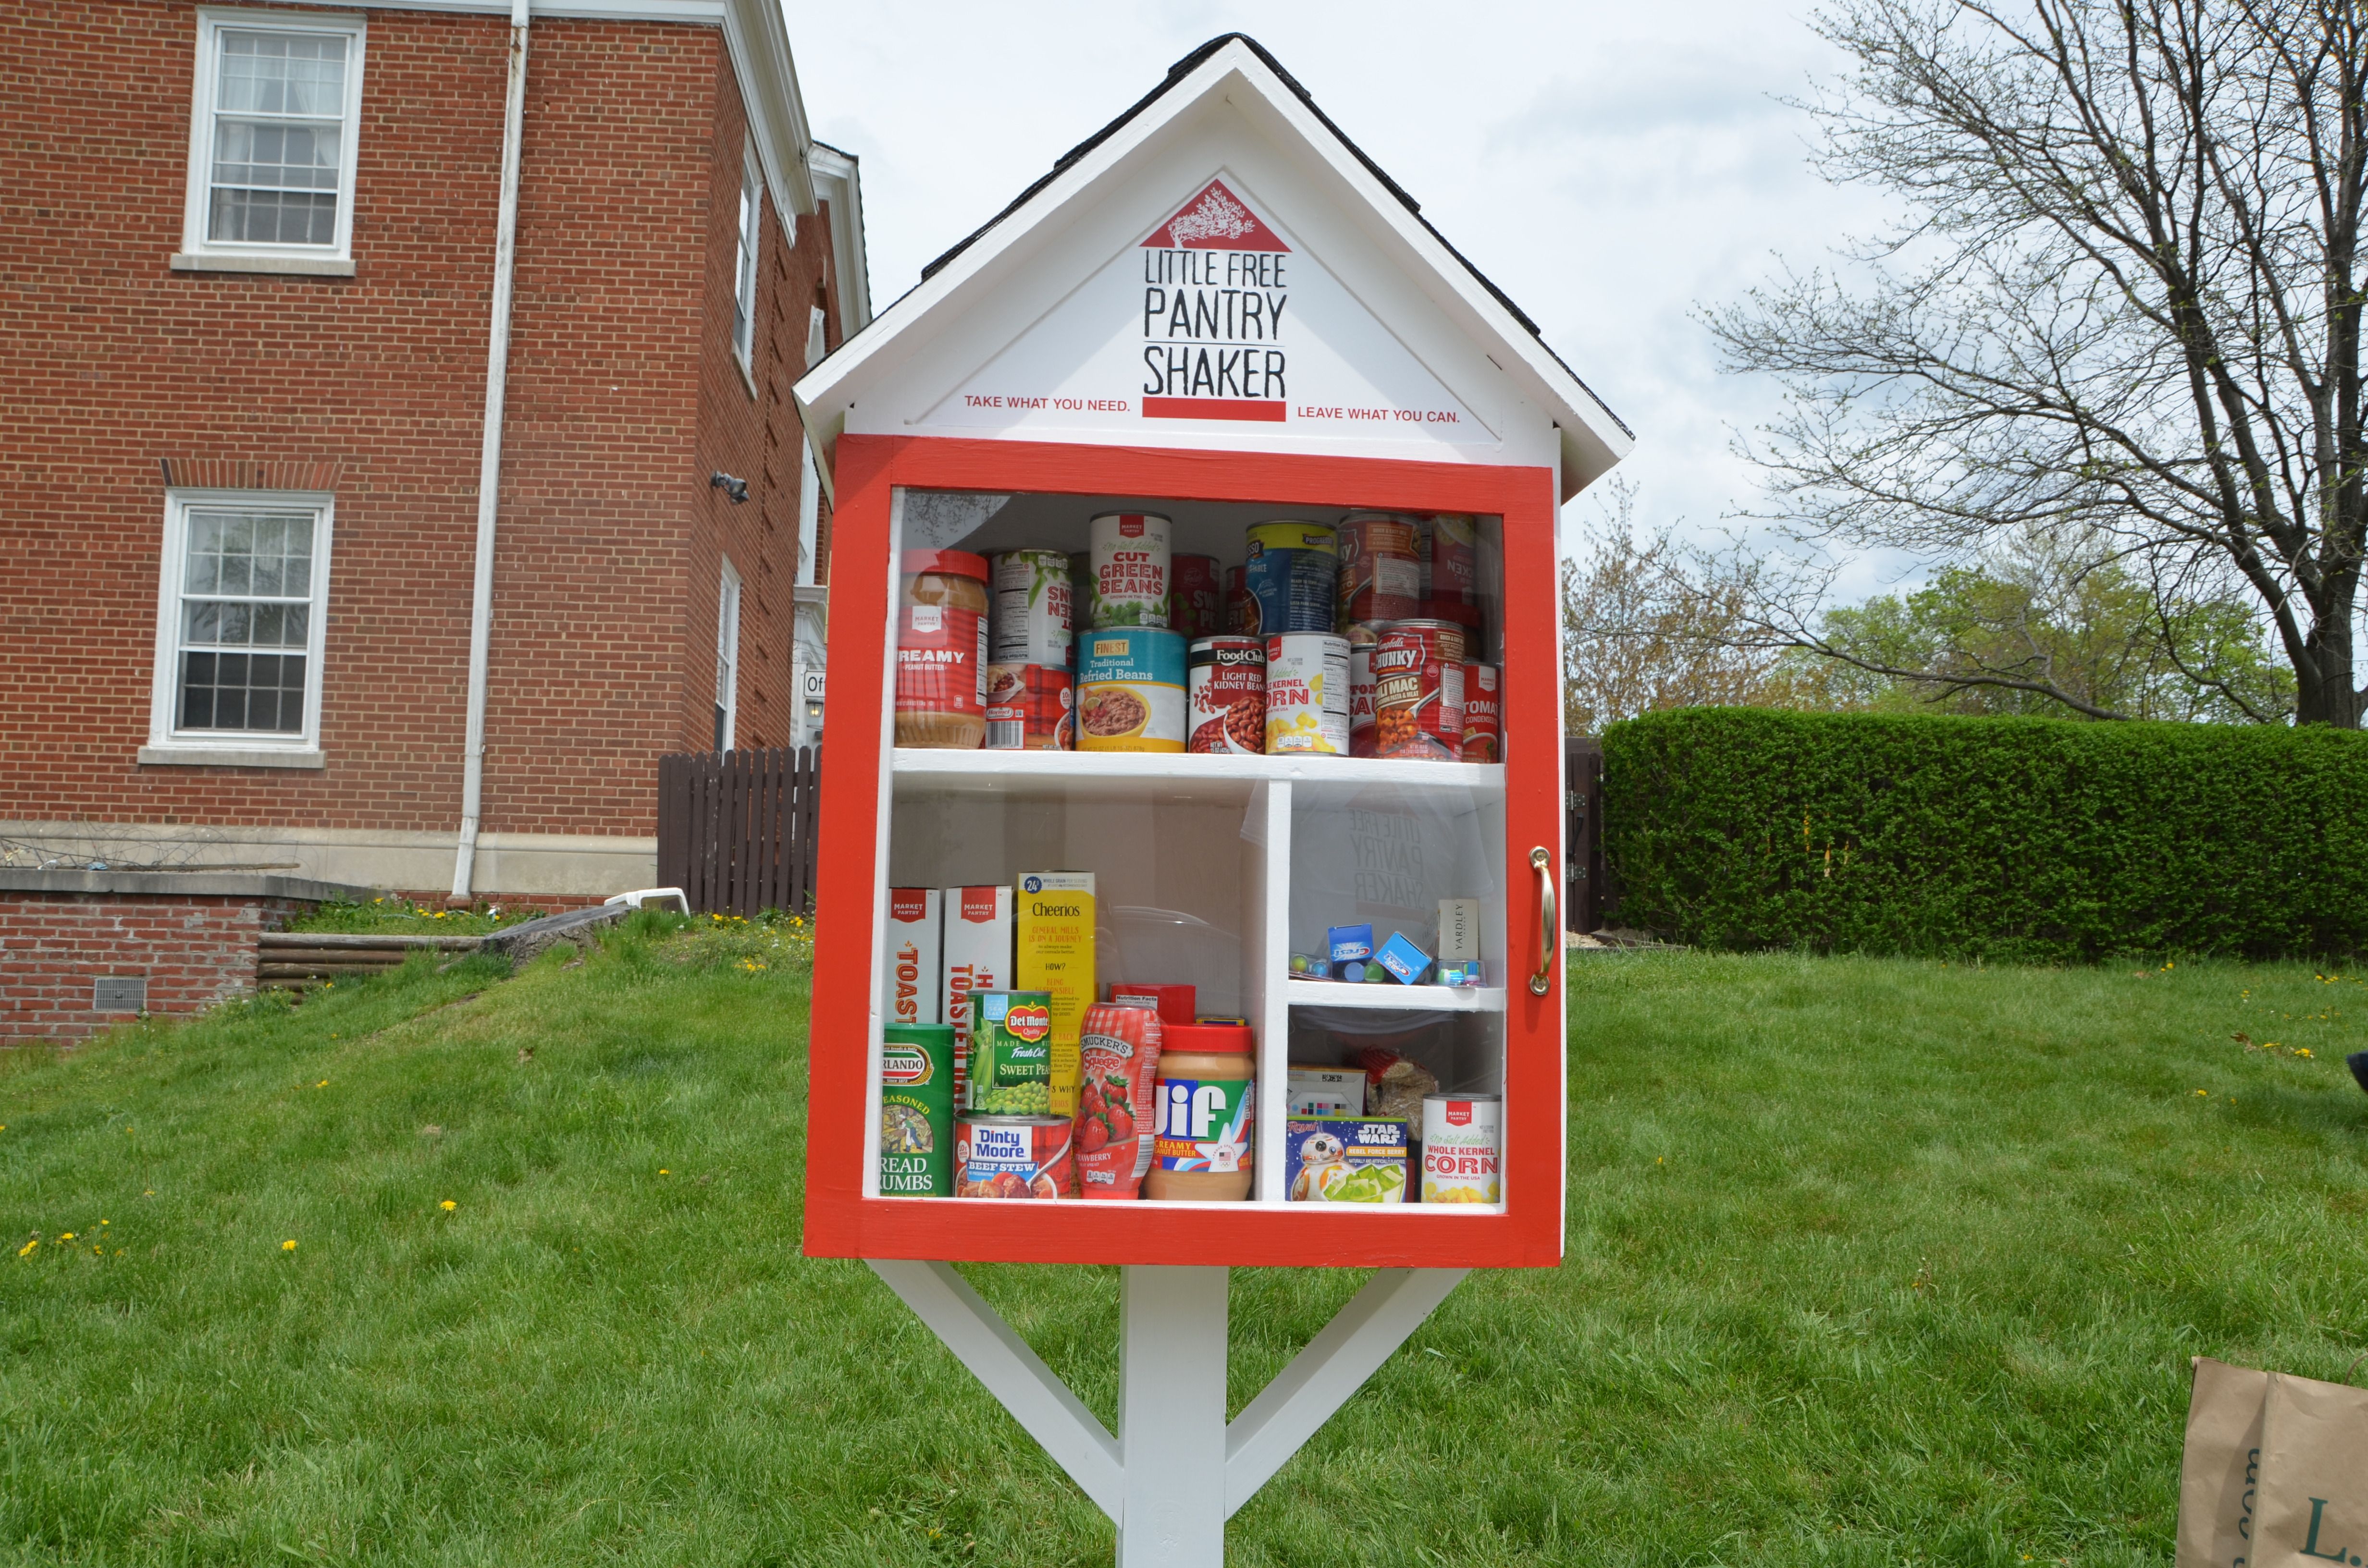 Little Free Pantry of Shaker Photo 1